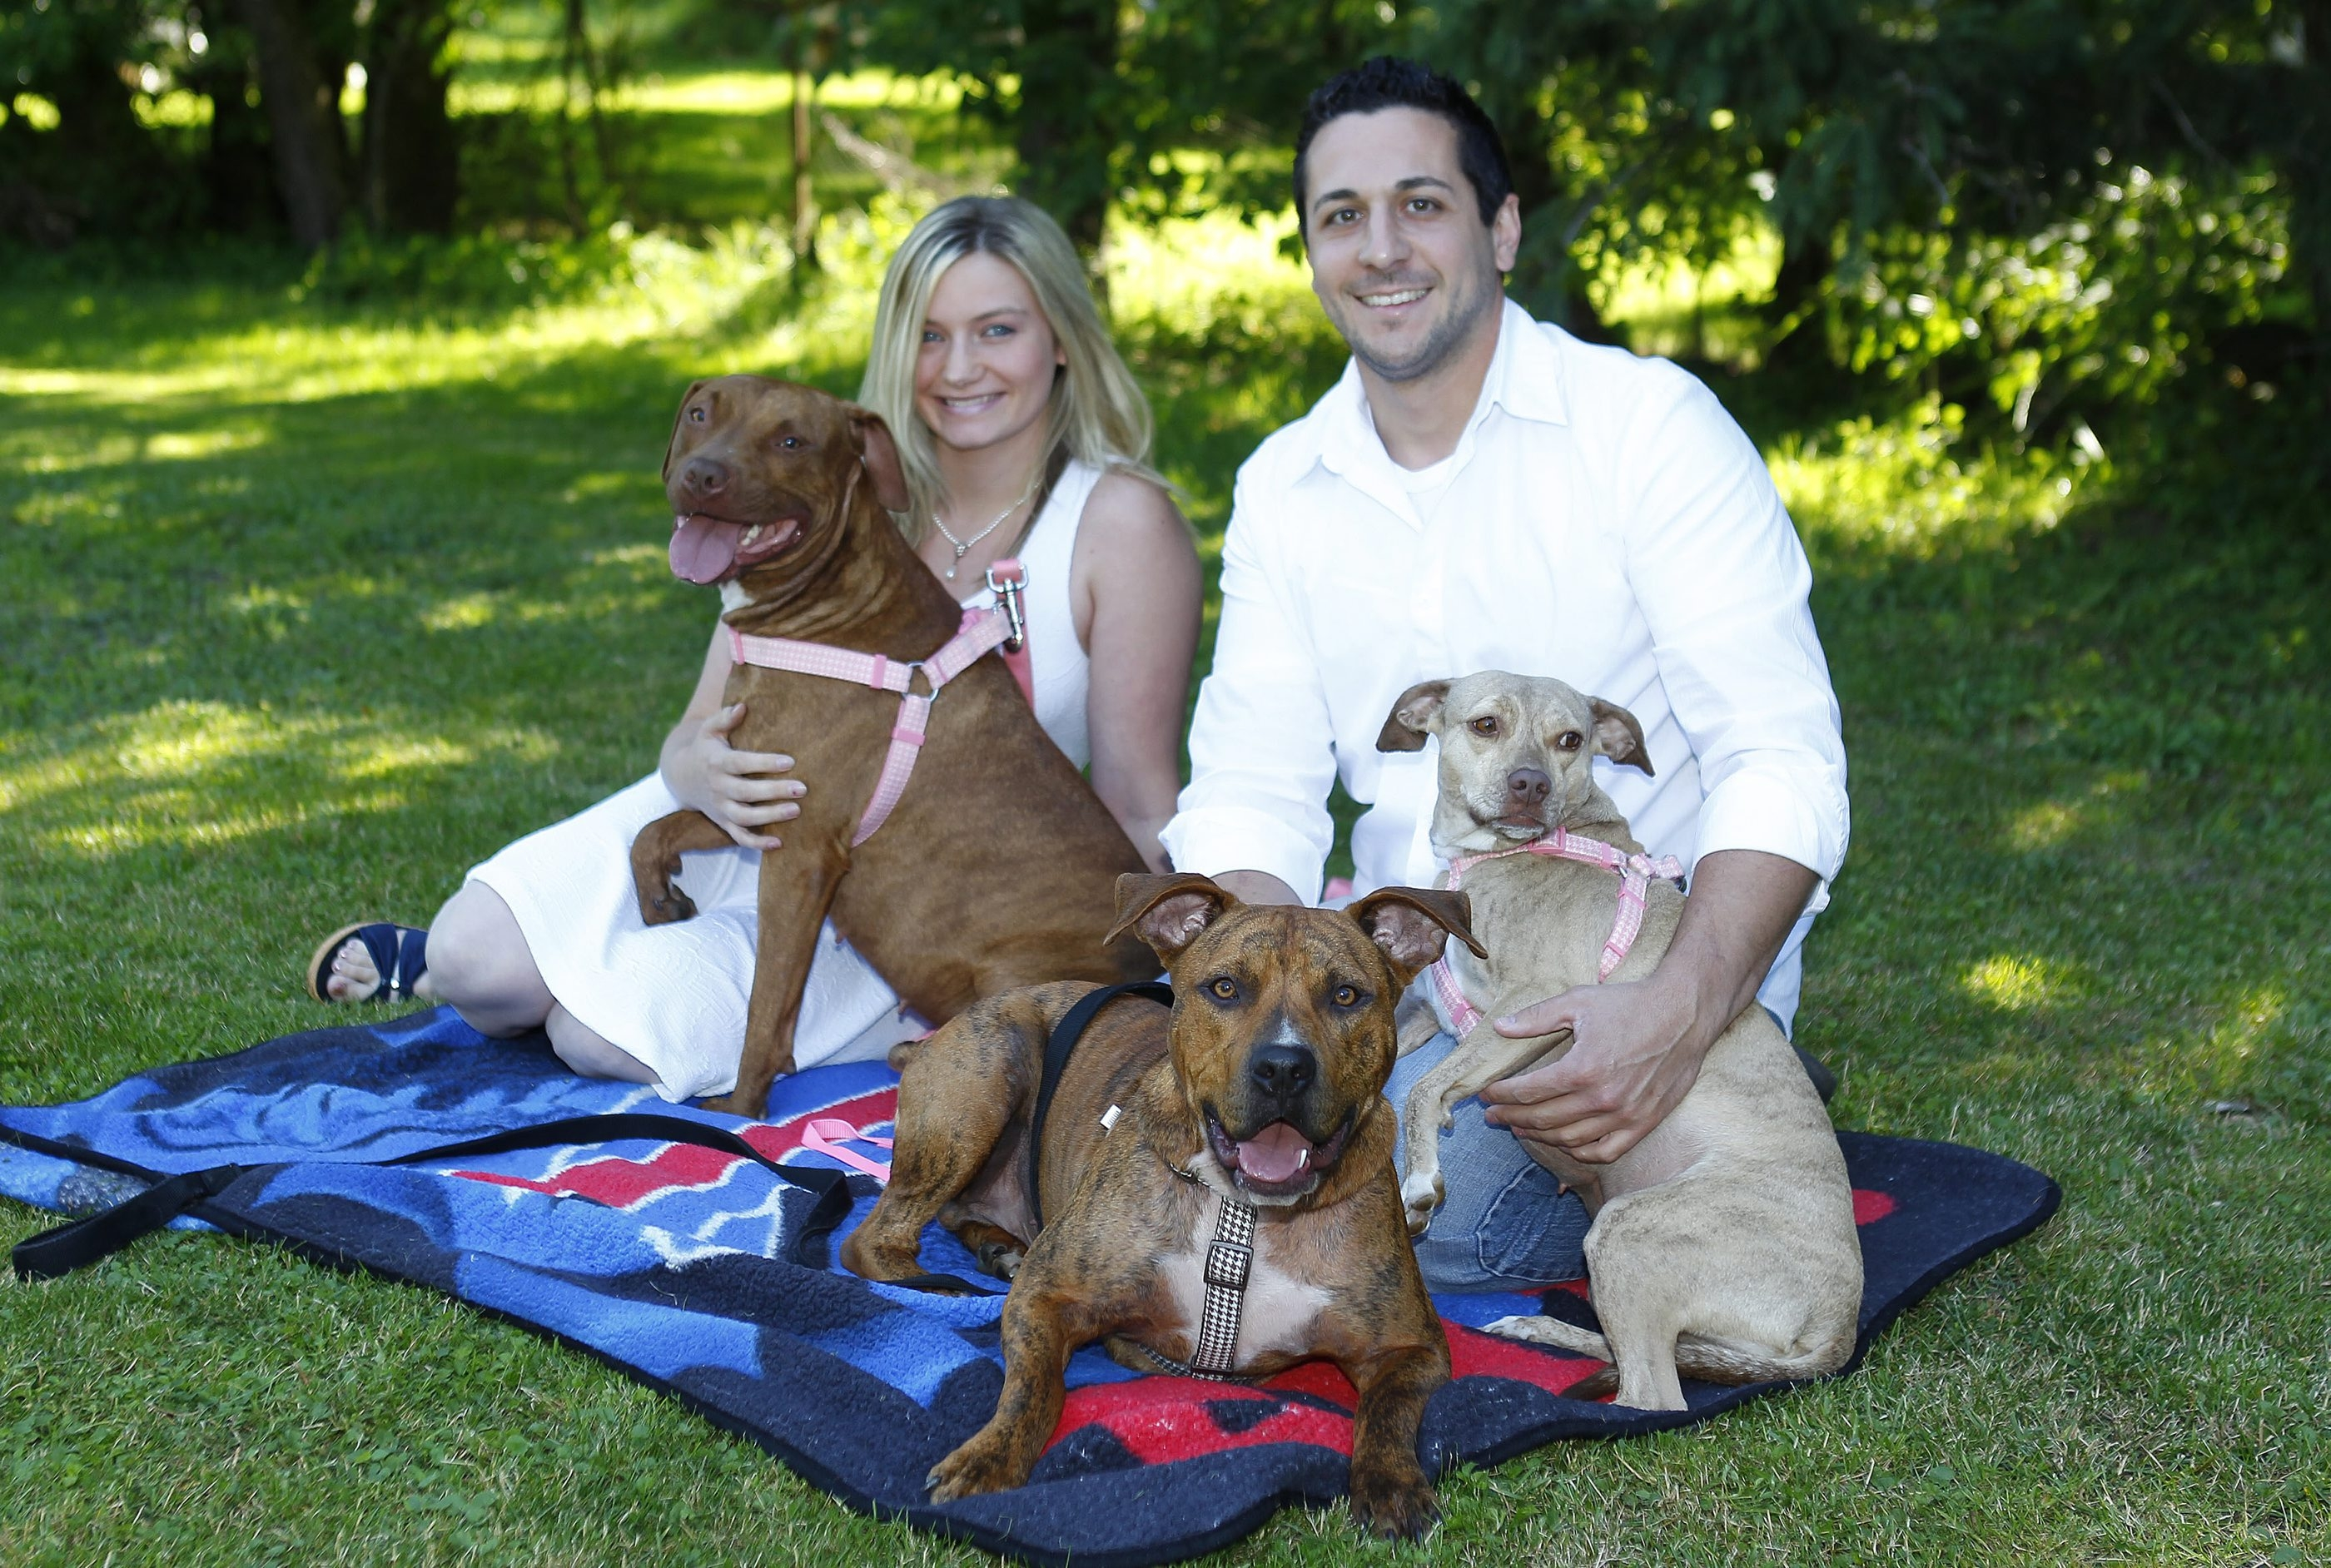 Heather VanDette sits with Maggie, a dog she hesitated to adopt, while Vinny Marano holds Mocha. Logan is in front.